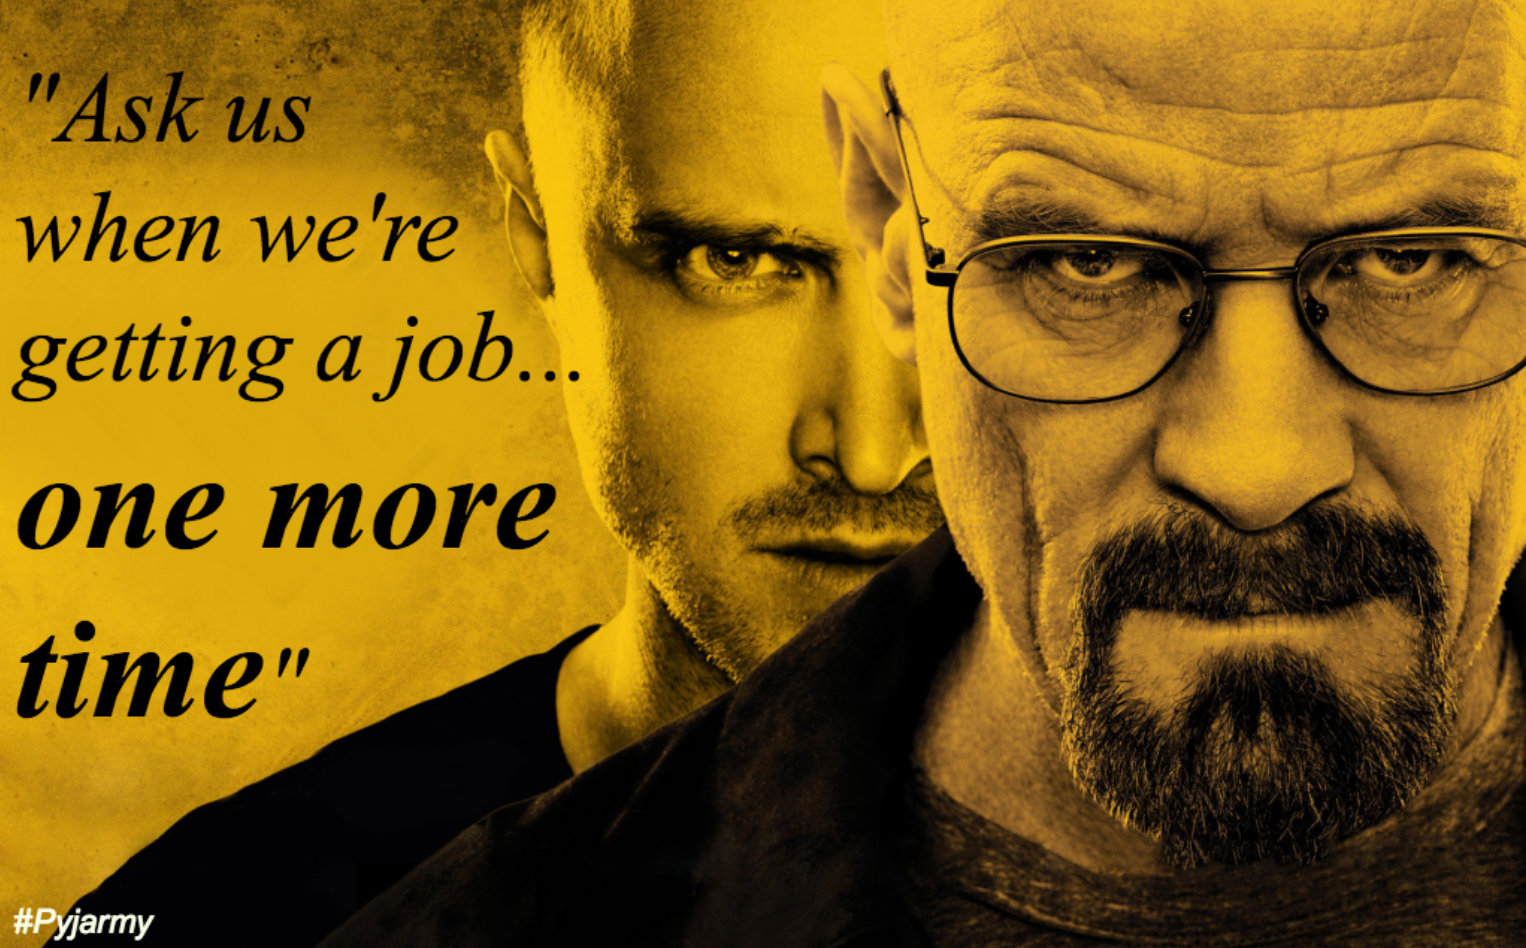 How it feels to be a jobseeker…Breaking Bad style